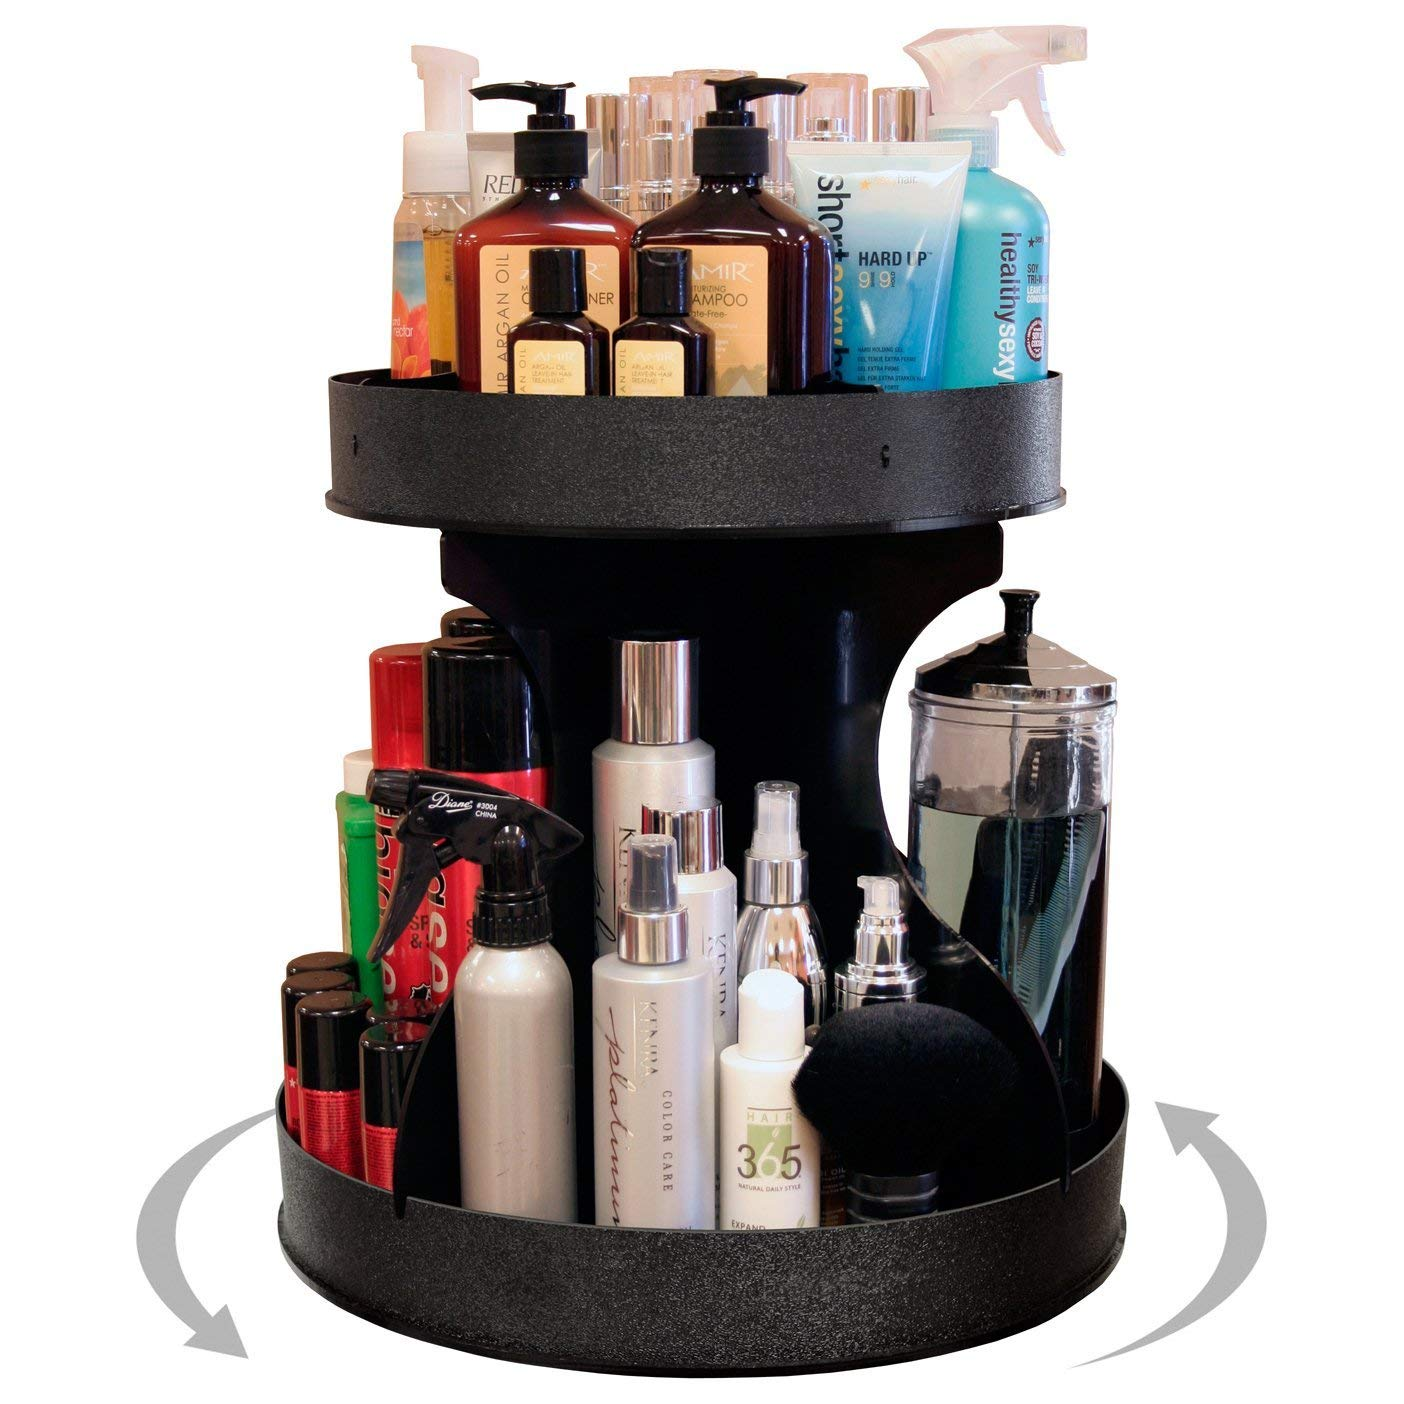 Professional Stylists and Divas Will Love 15 Wide, Spinning Cosmetic Organizer. Great for Salons or for Cosmetic Divas Made by PPM in the USA